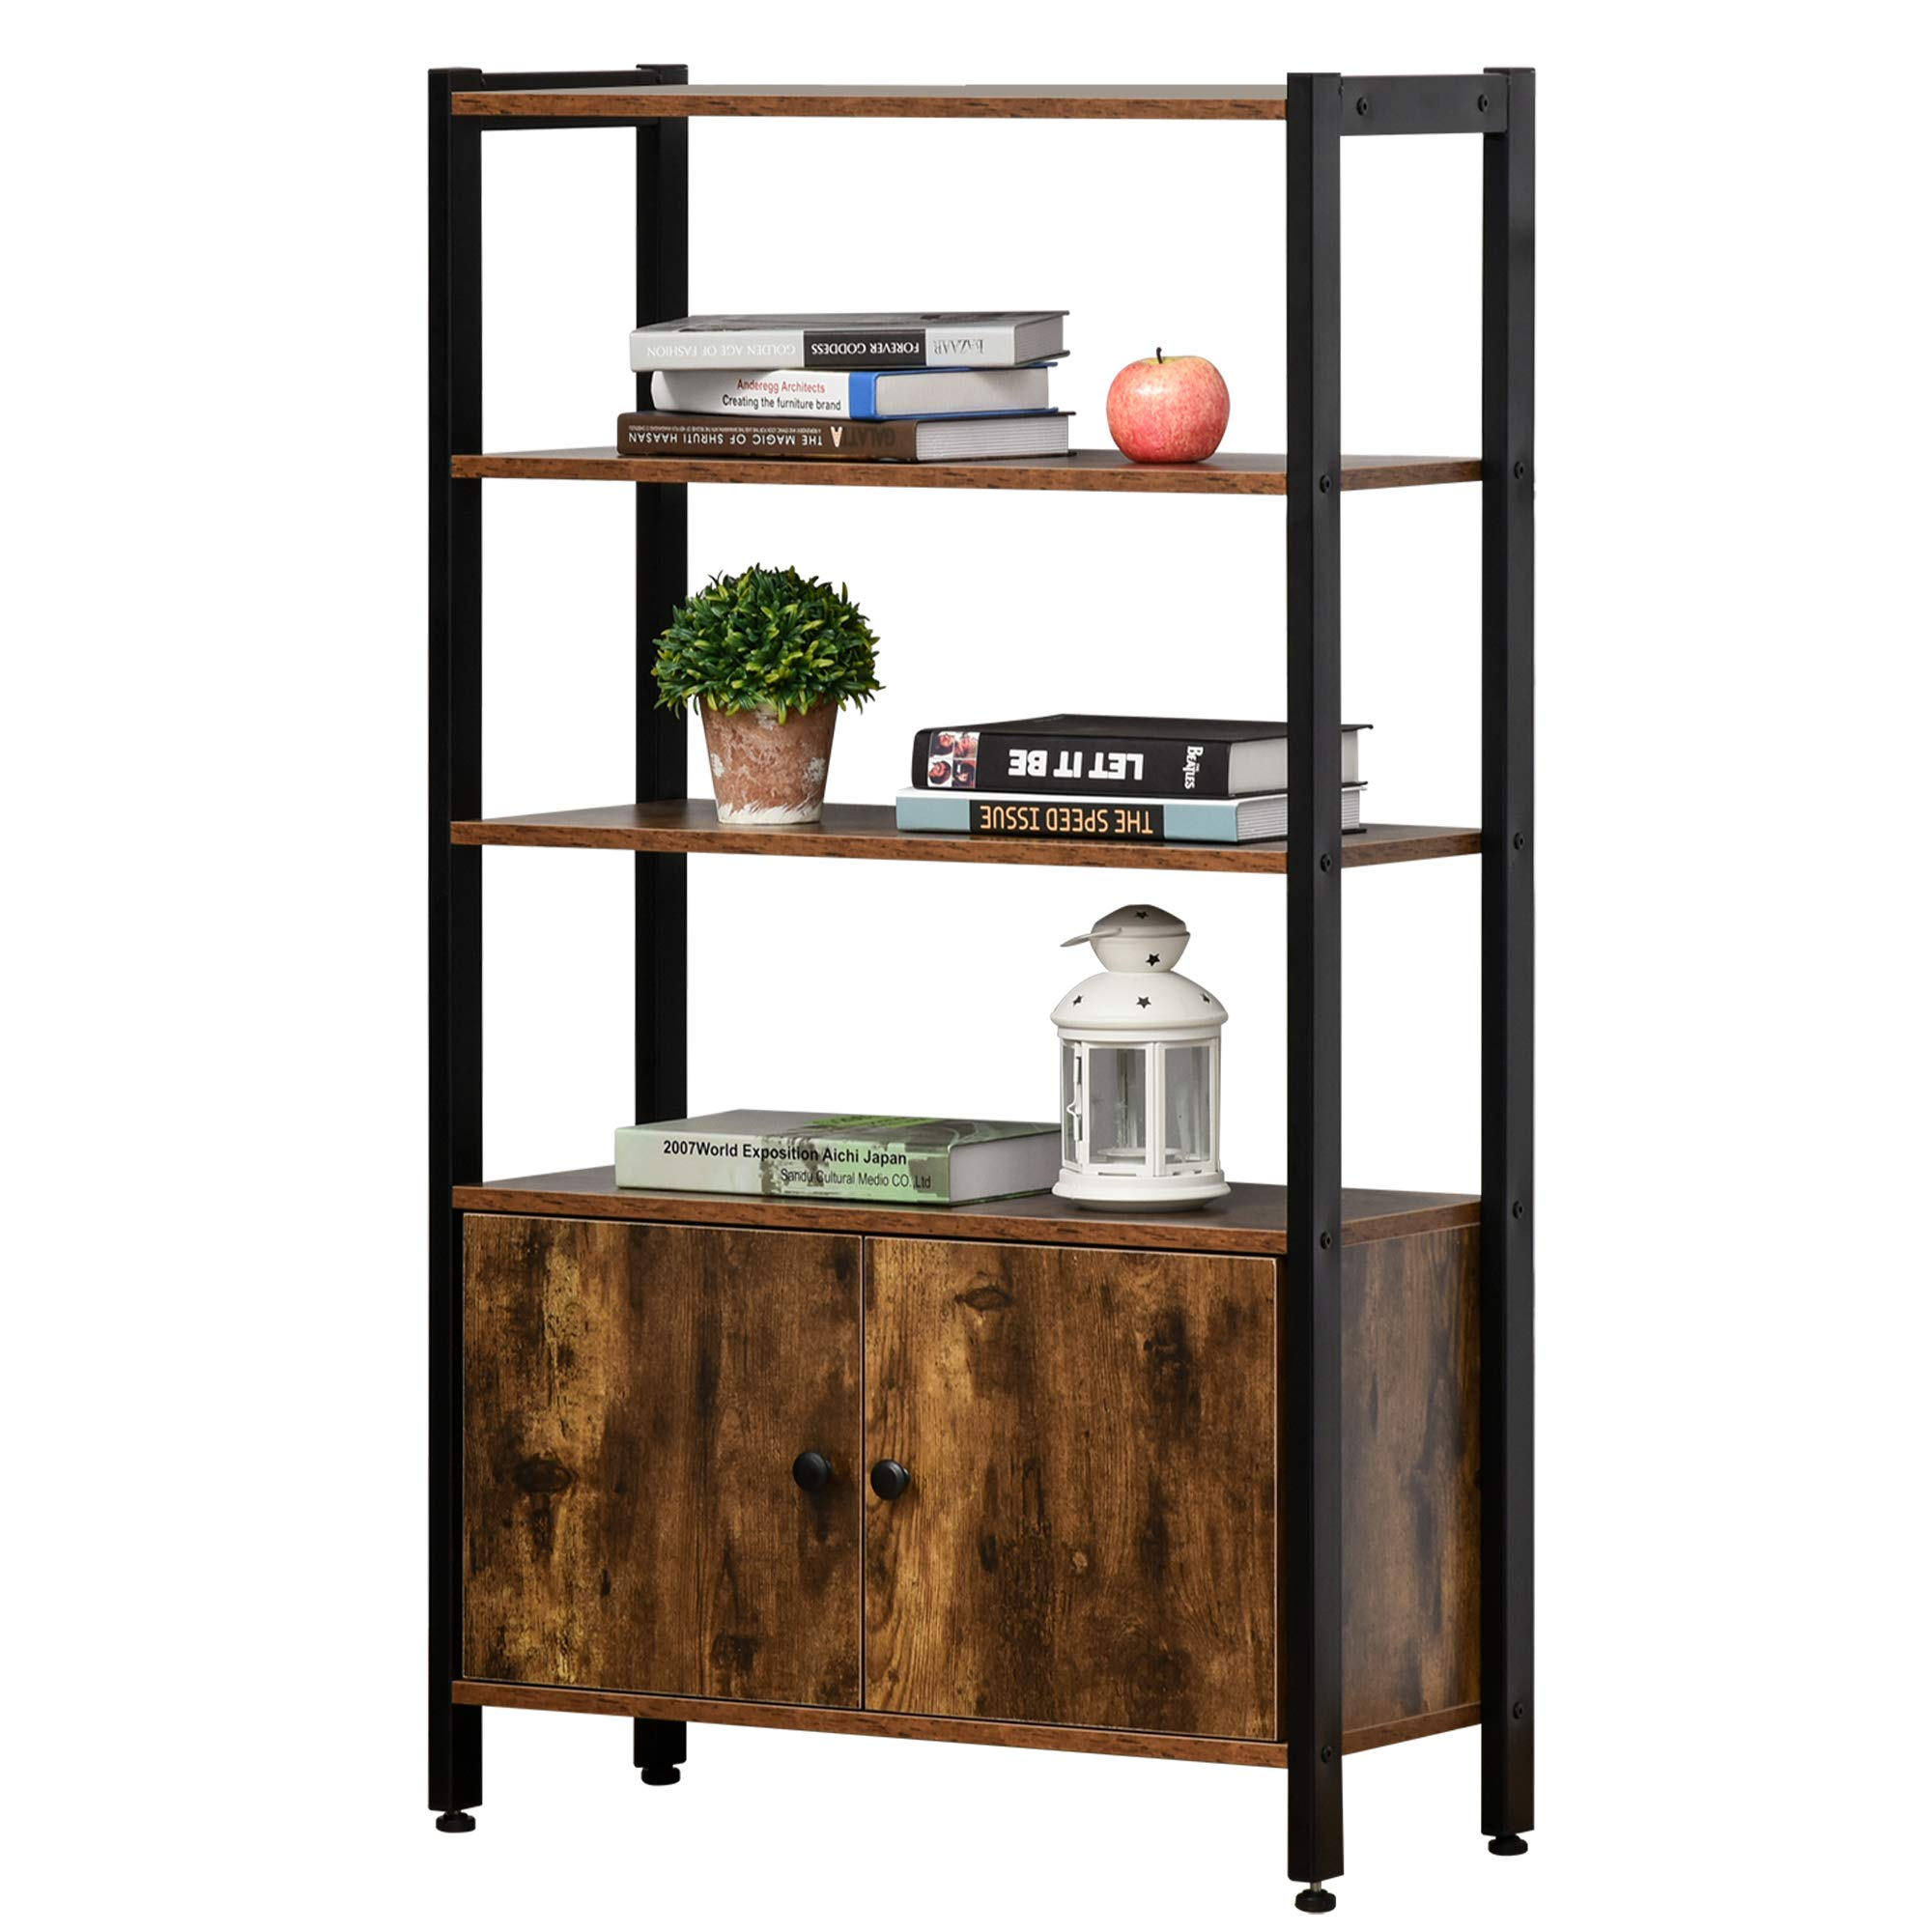 HOMCOM Industrial Bookshelf, Storage Cabinet with 3-Tier with Doors, for Home Office, Living Room Rustic Brown